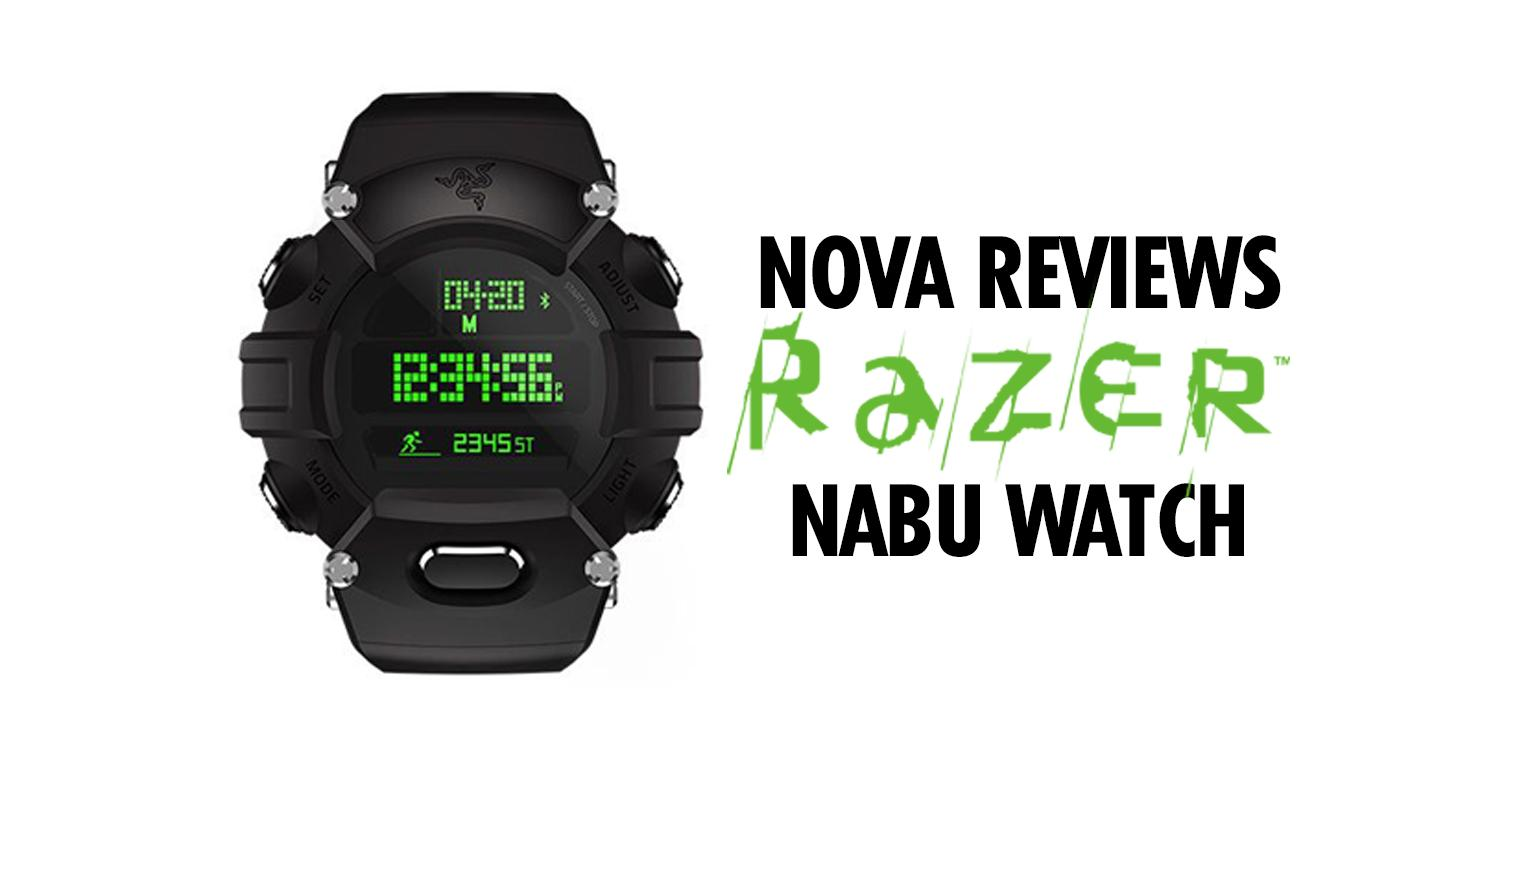 Nova Reviews the Razer Nabu Watch